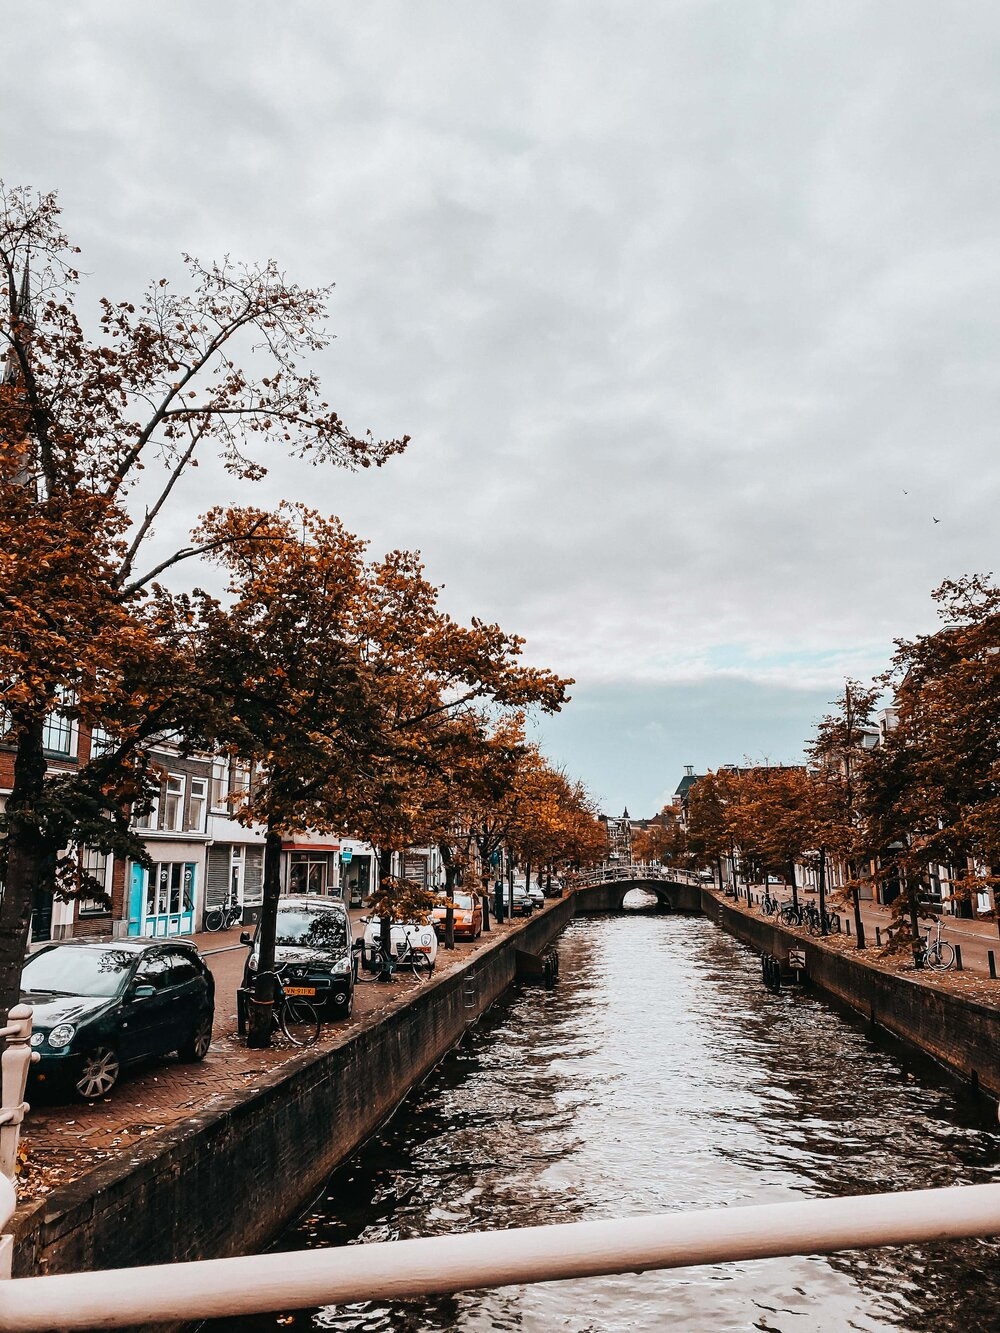 The Most Instagramable Places In Leeuwarden — @iamfoodietraveler